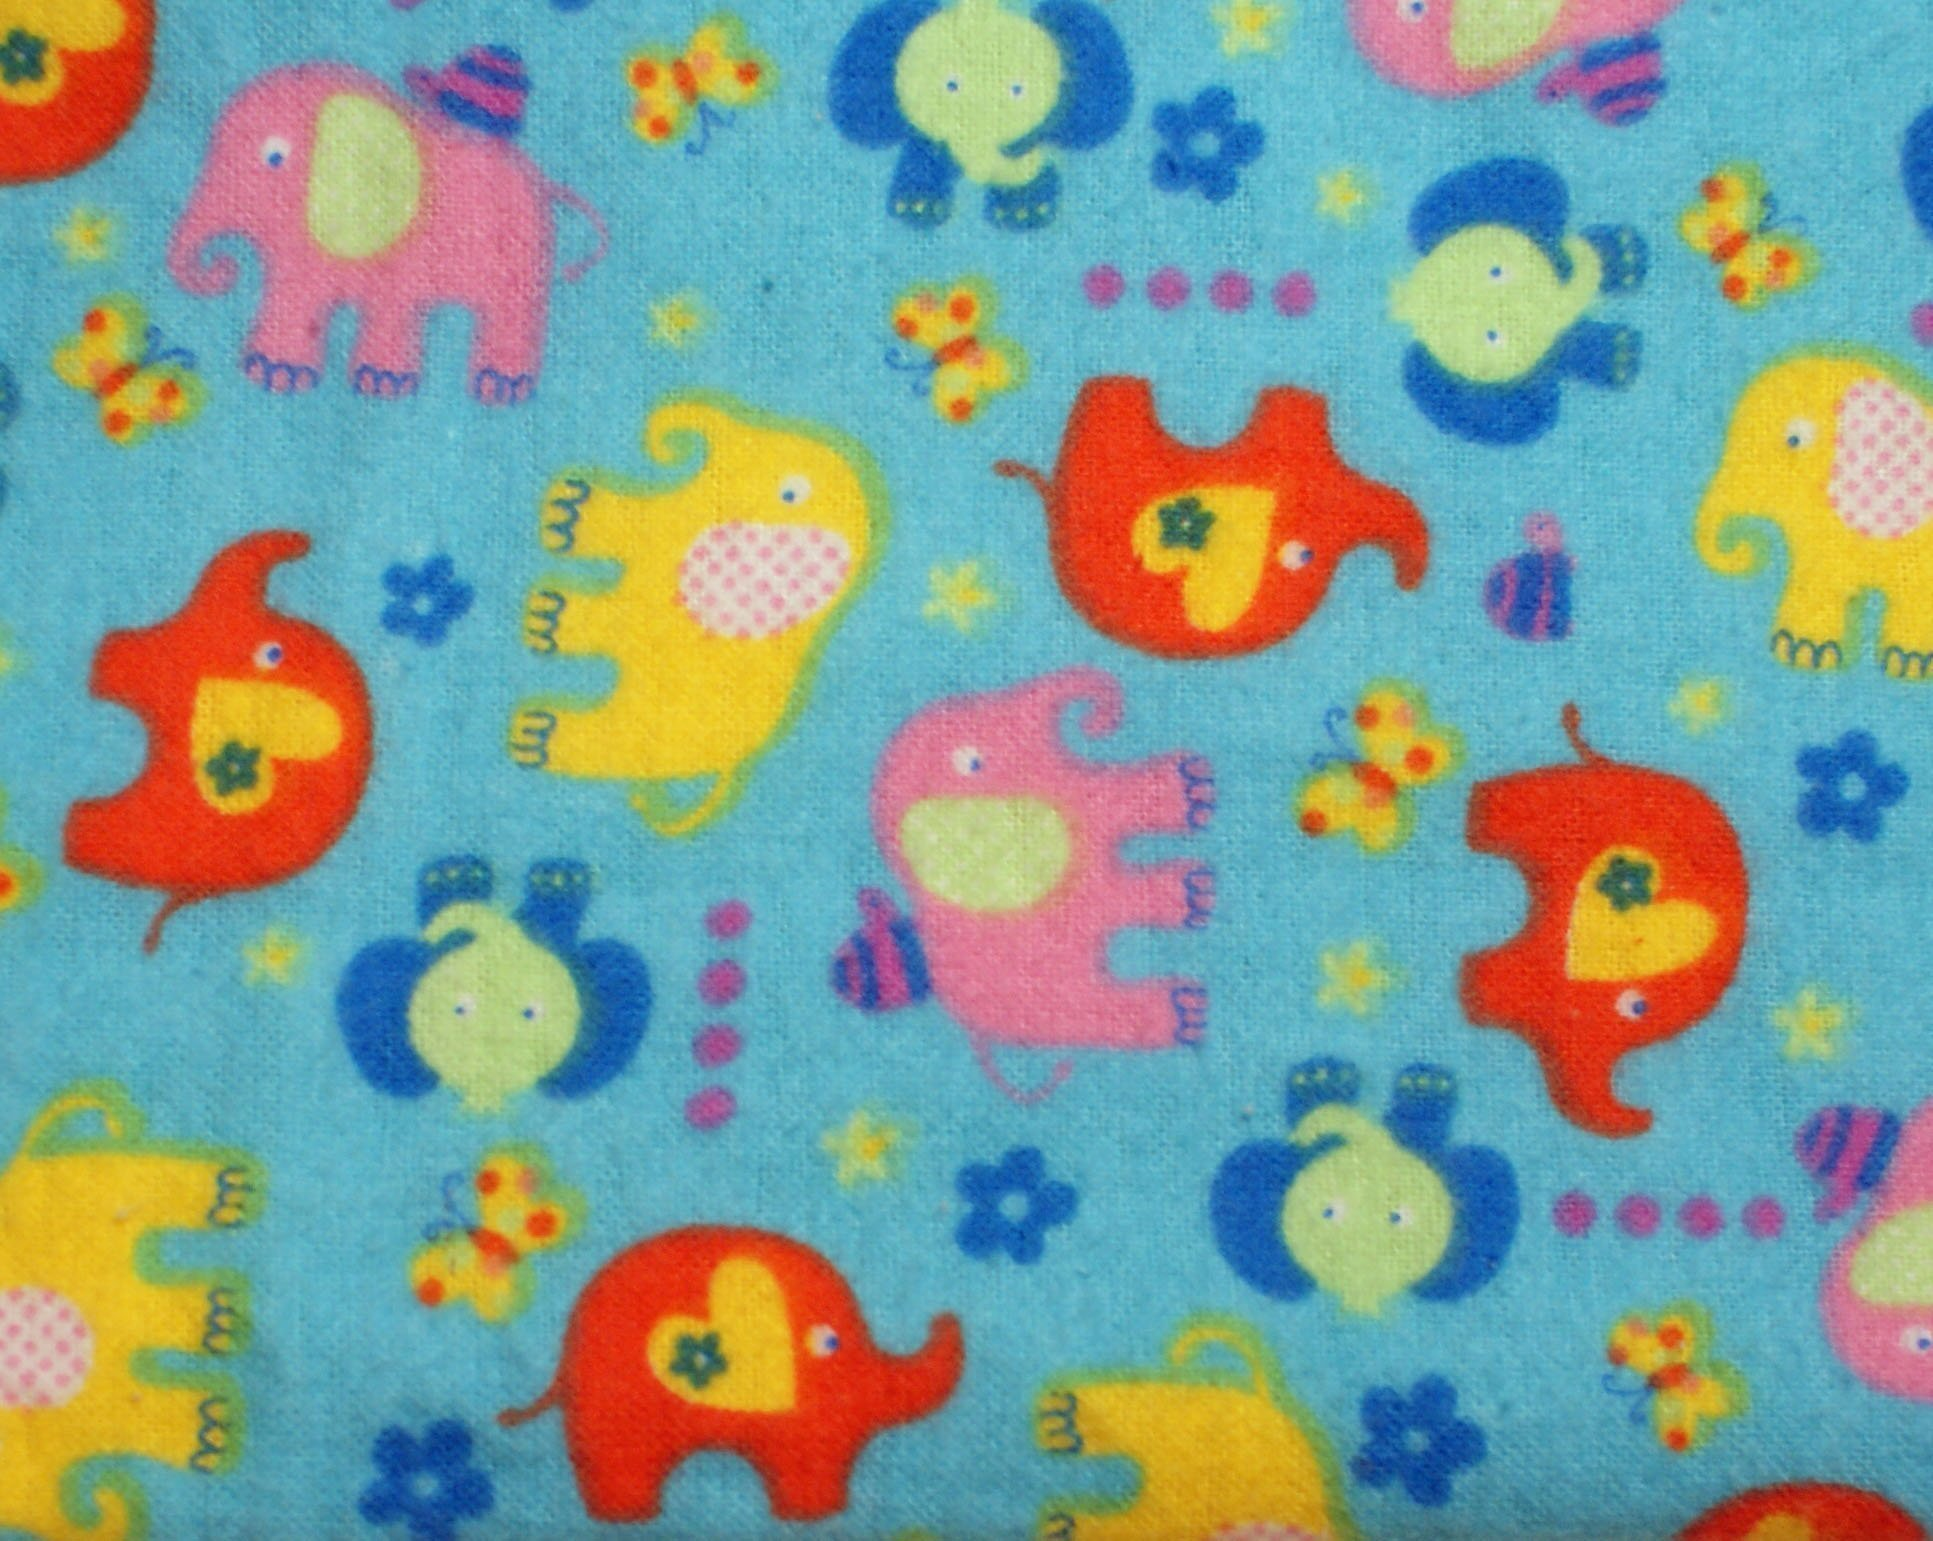 Pocket-2in1-Sheet Elephants Pattern with Yellow Flannel 2 in 1 Patented No Slip Reversible Pack n Play Play Yard Fitted Sheet Cover or Day Care Mini Crib Mattress Sheet